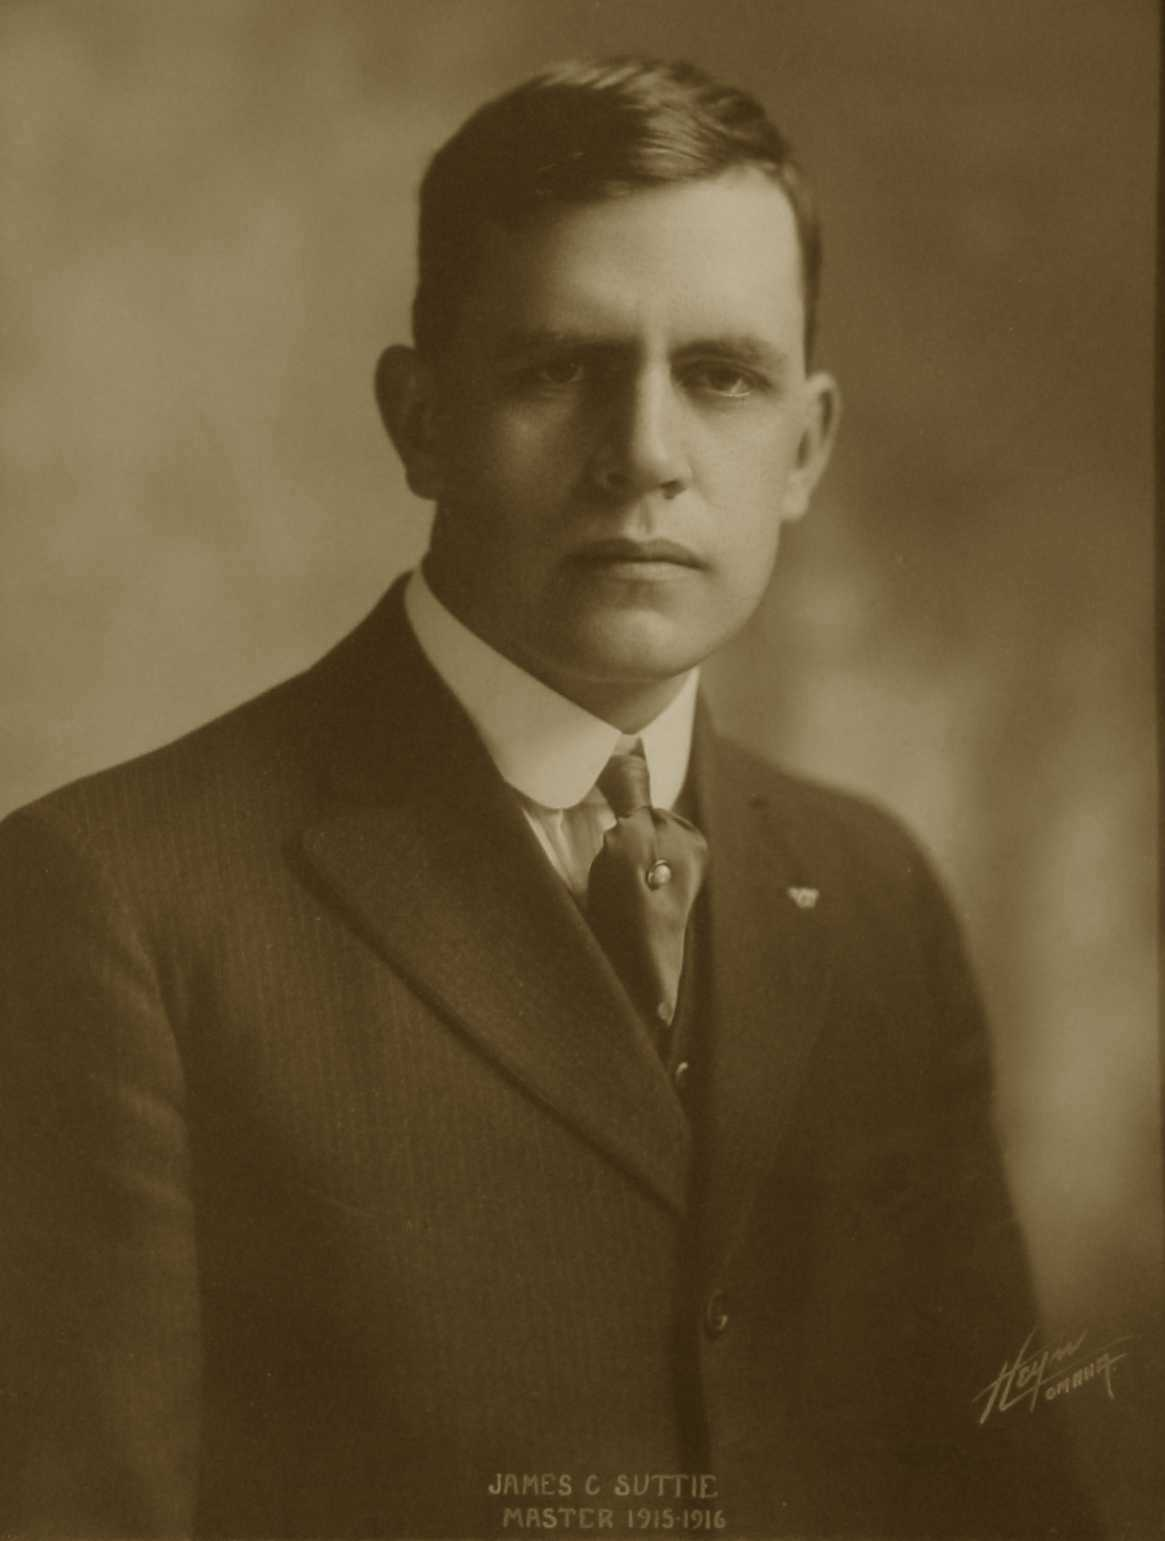 James C. Suttie, 1915-1916